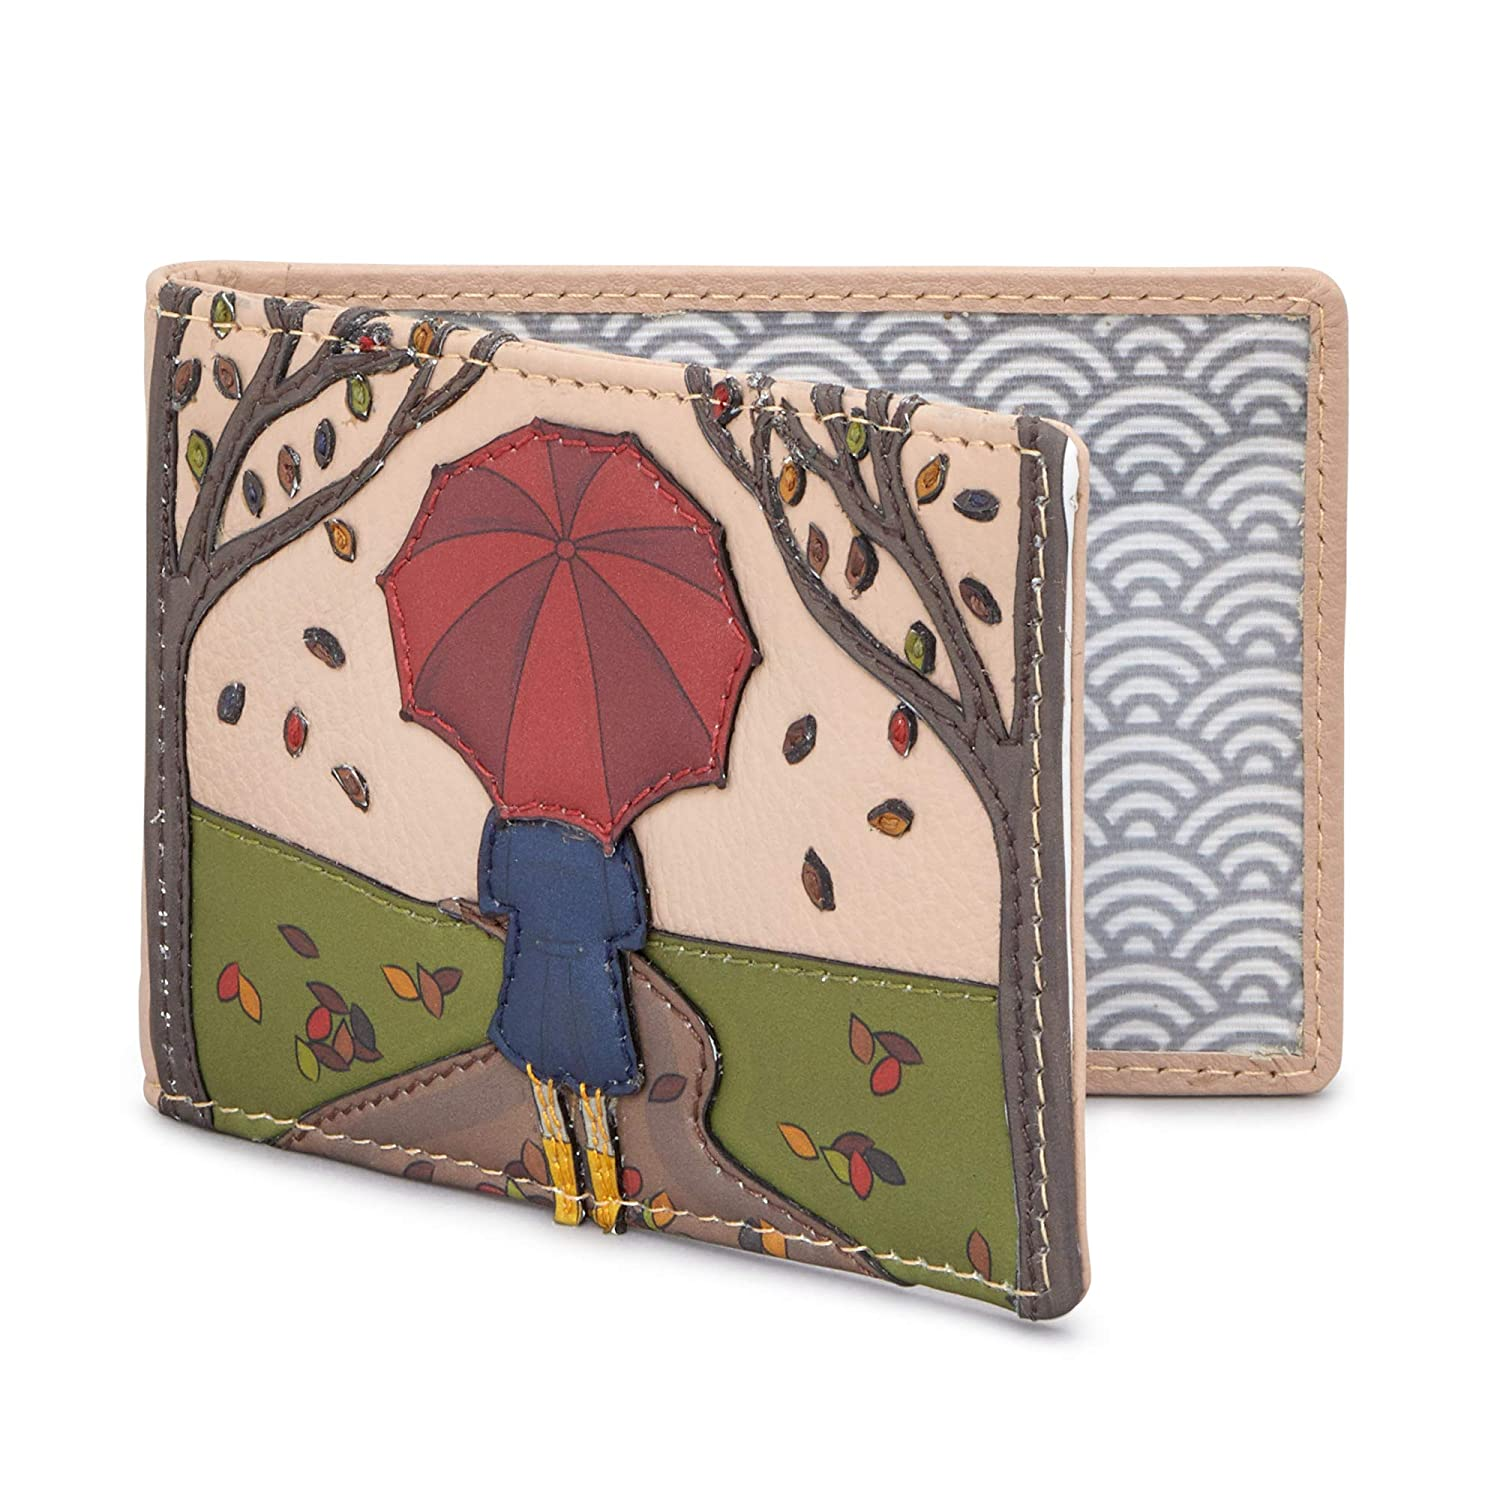 Autumn Girl Leather Travel Pass Holder by Yoshi